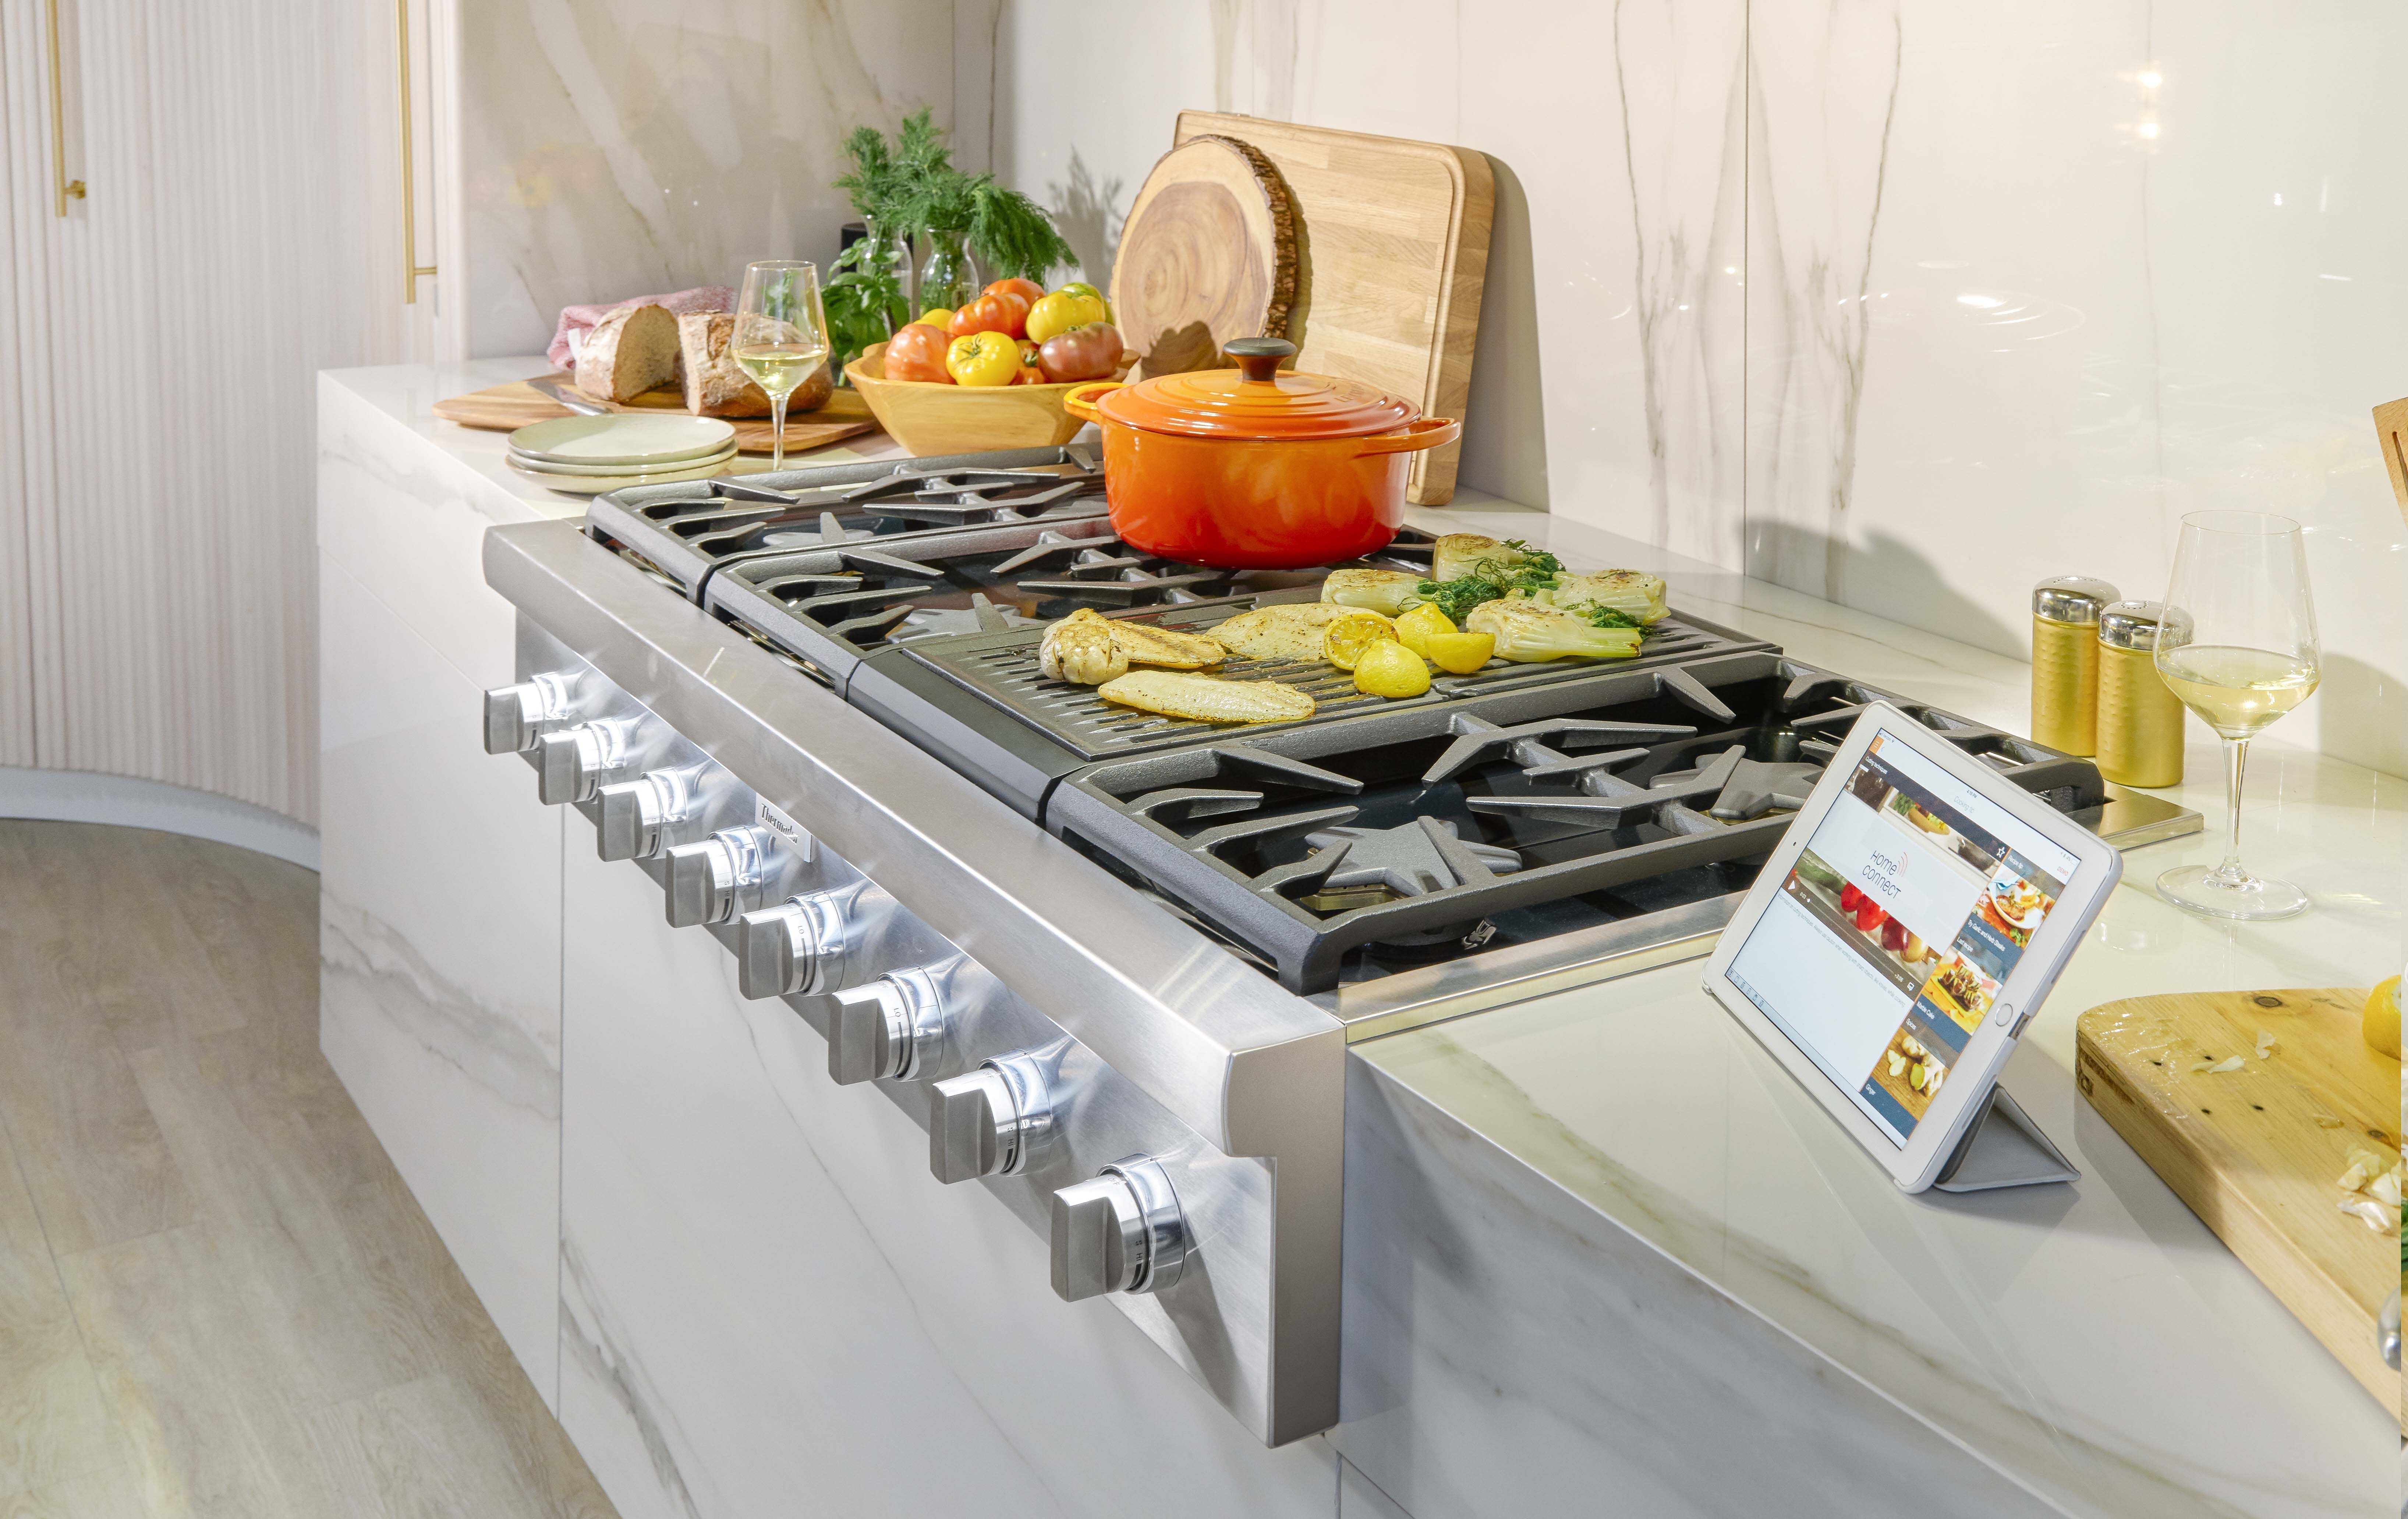 Achieve The Ultimate Temperature Control For Cooking Your Most